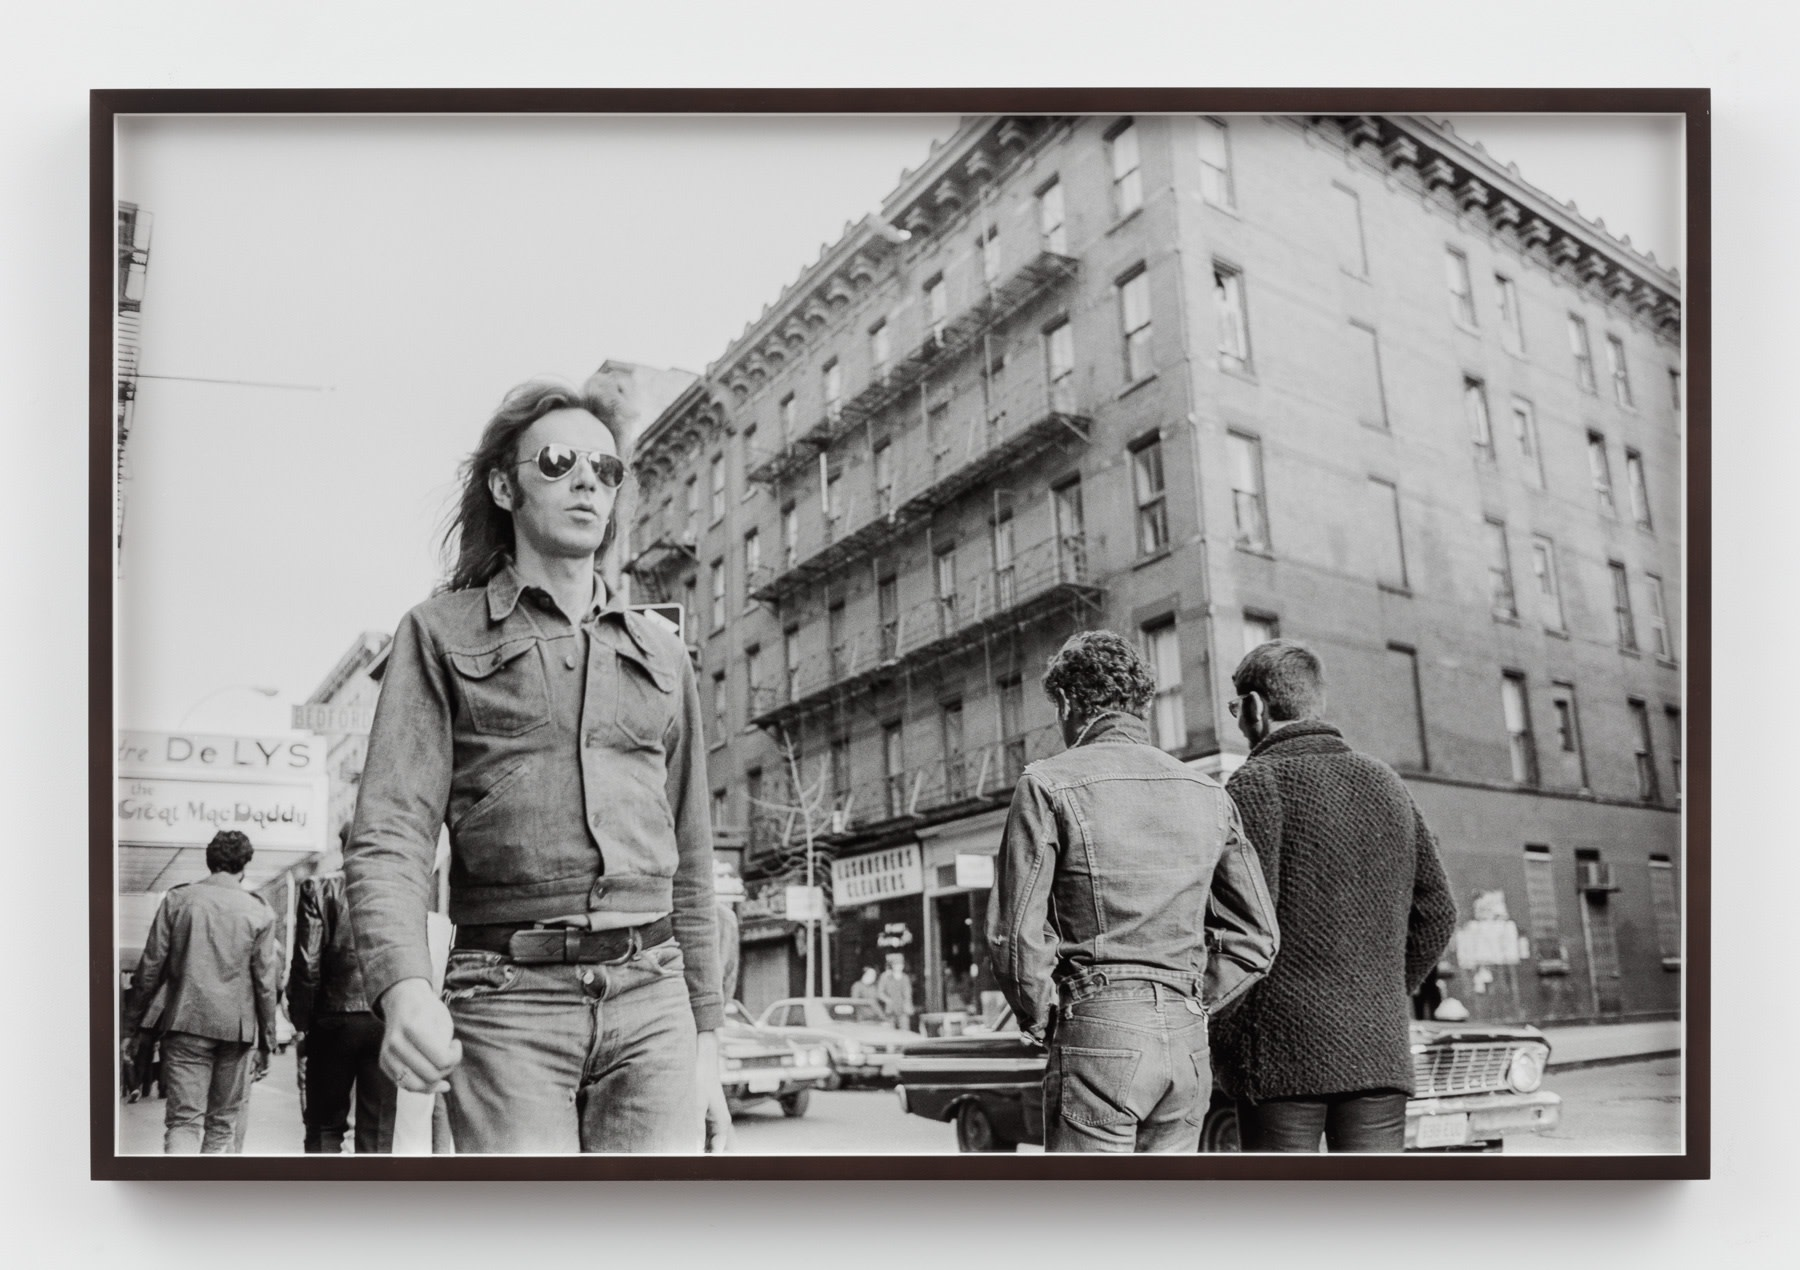 Sunil Gupta, Untitled #37 from the series Christopher Street, 1976/2019, Silver gelatin print, 60.7 x 91.6 cm, 23 7/8 x 36 1/8 in, Framed: 63 x 93.7 cm, 24 7/8 x 36 7/8 in, Edition of 5 plus 1 AP